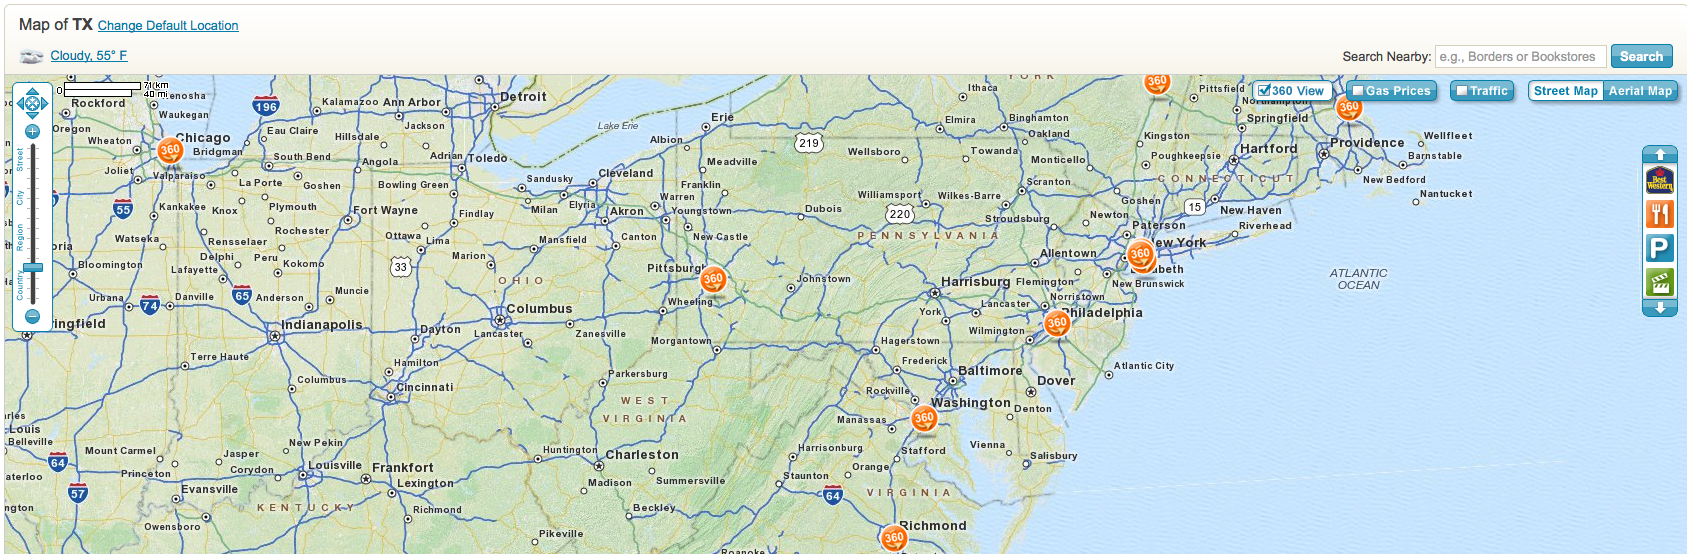 Playing Catch-up MapQuest Launches \'360 View\' | Screenwerk